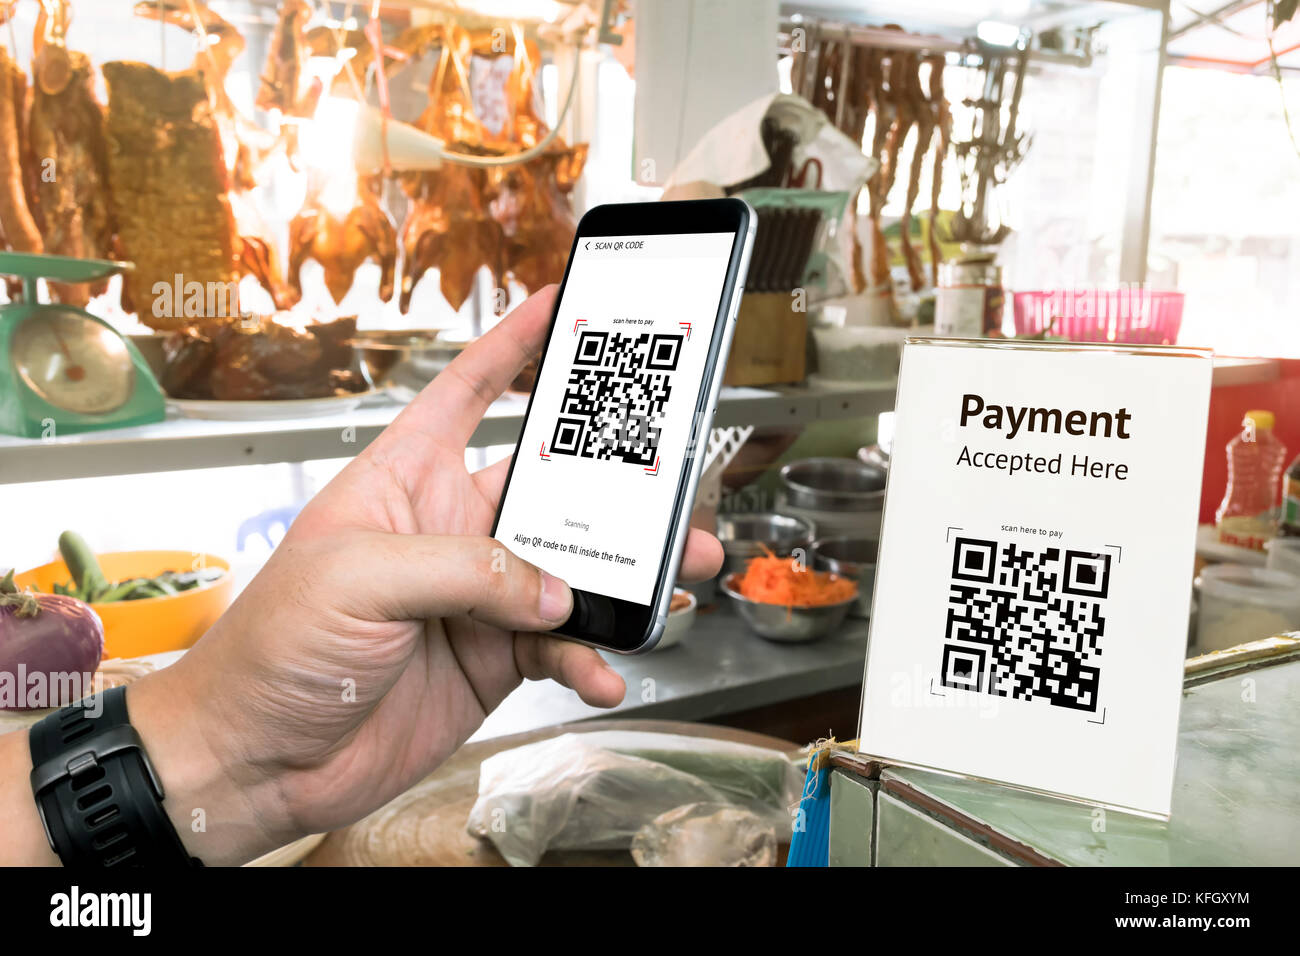 Qr Code Payment Online Shopping Cashless Technology Concept - Pay at the table restaurant